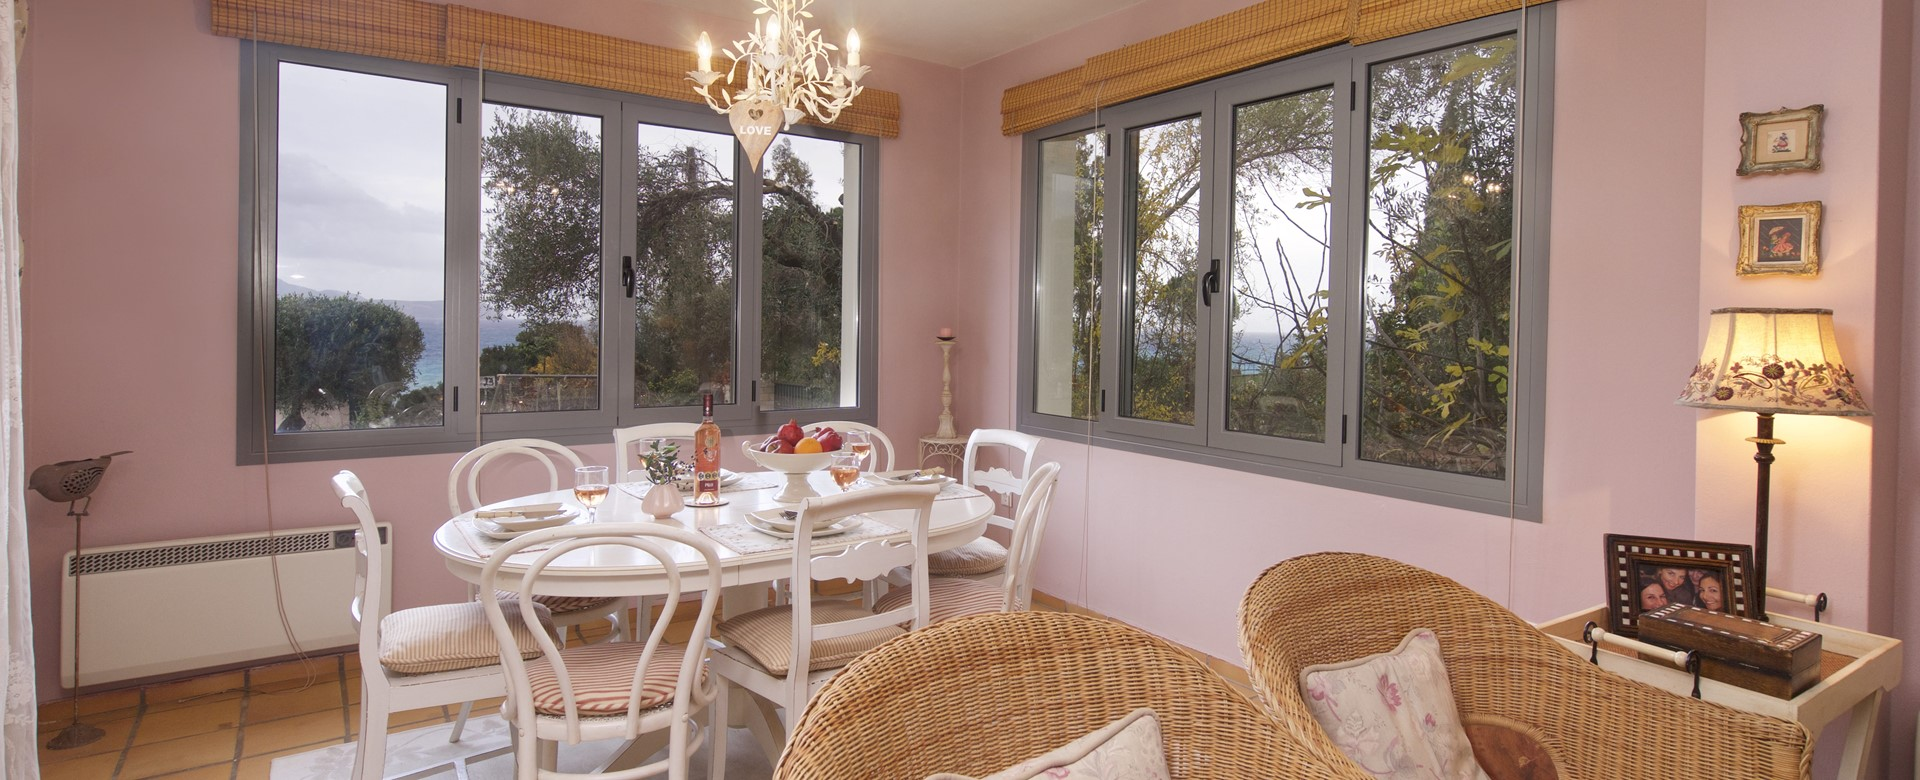 Family dining room with lovely views over the garden and sea at Villa Christianna, Pessada, Kefalonia, Greek Islands